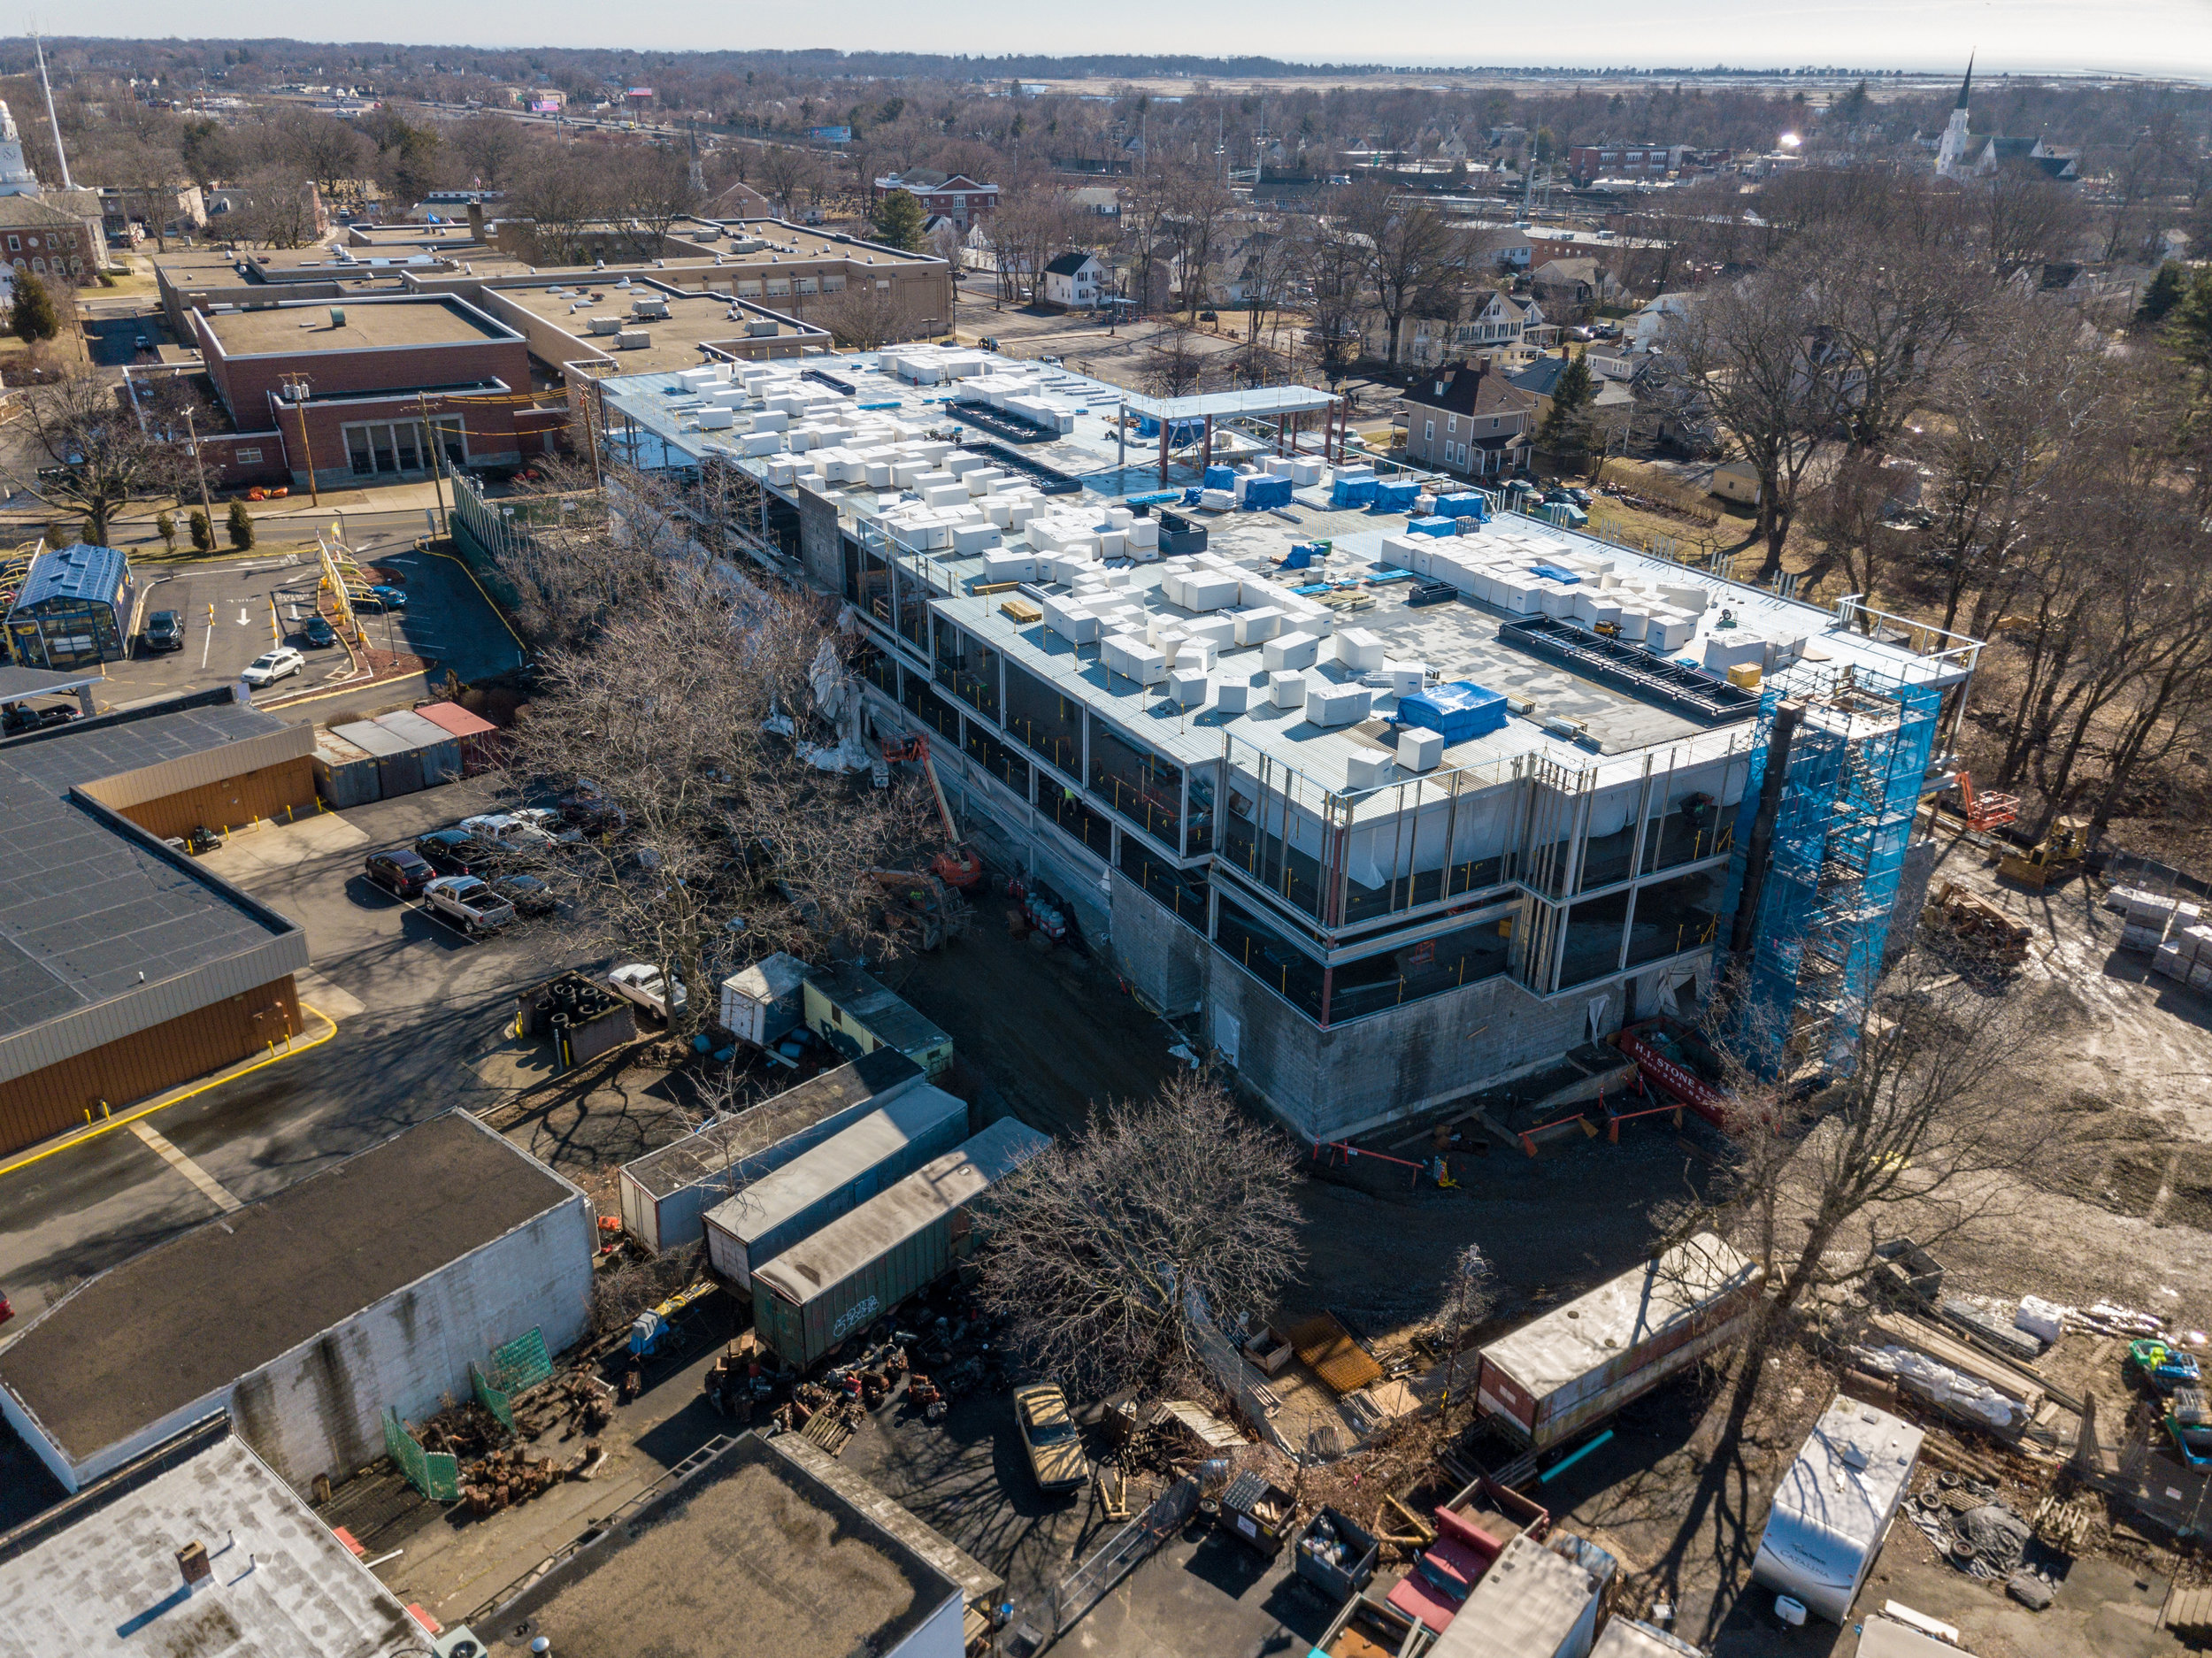 Stratford High Construction 0019 2018-02-24.jpg